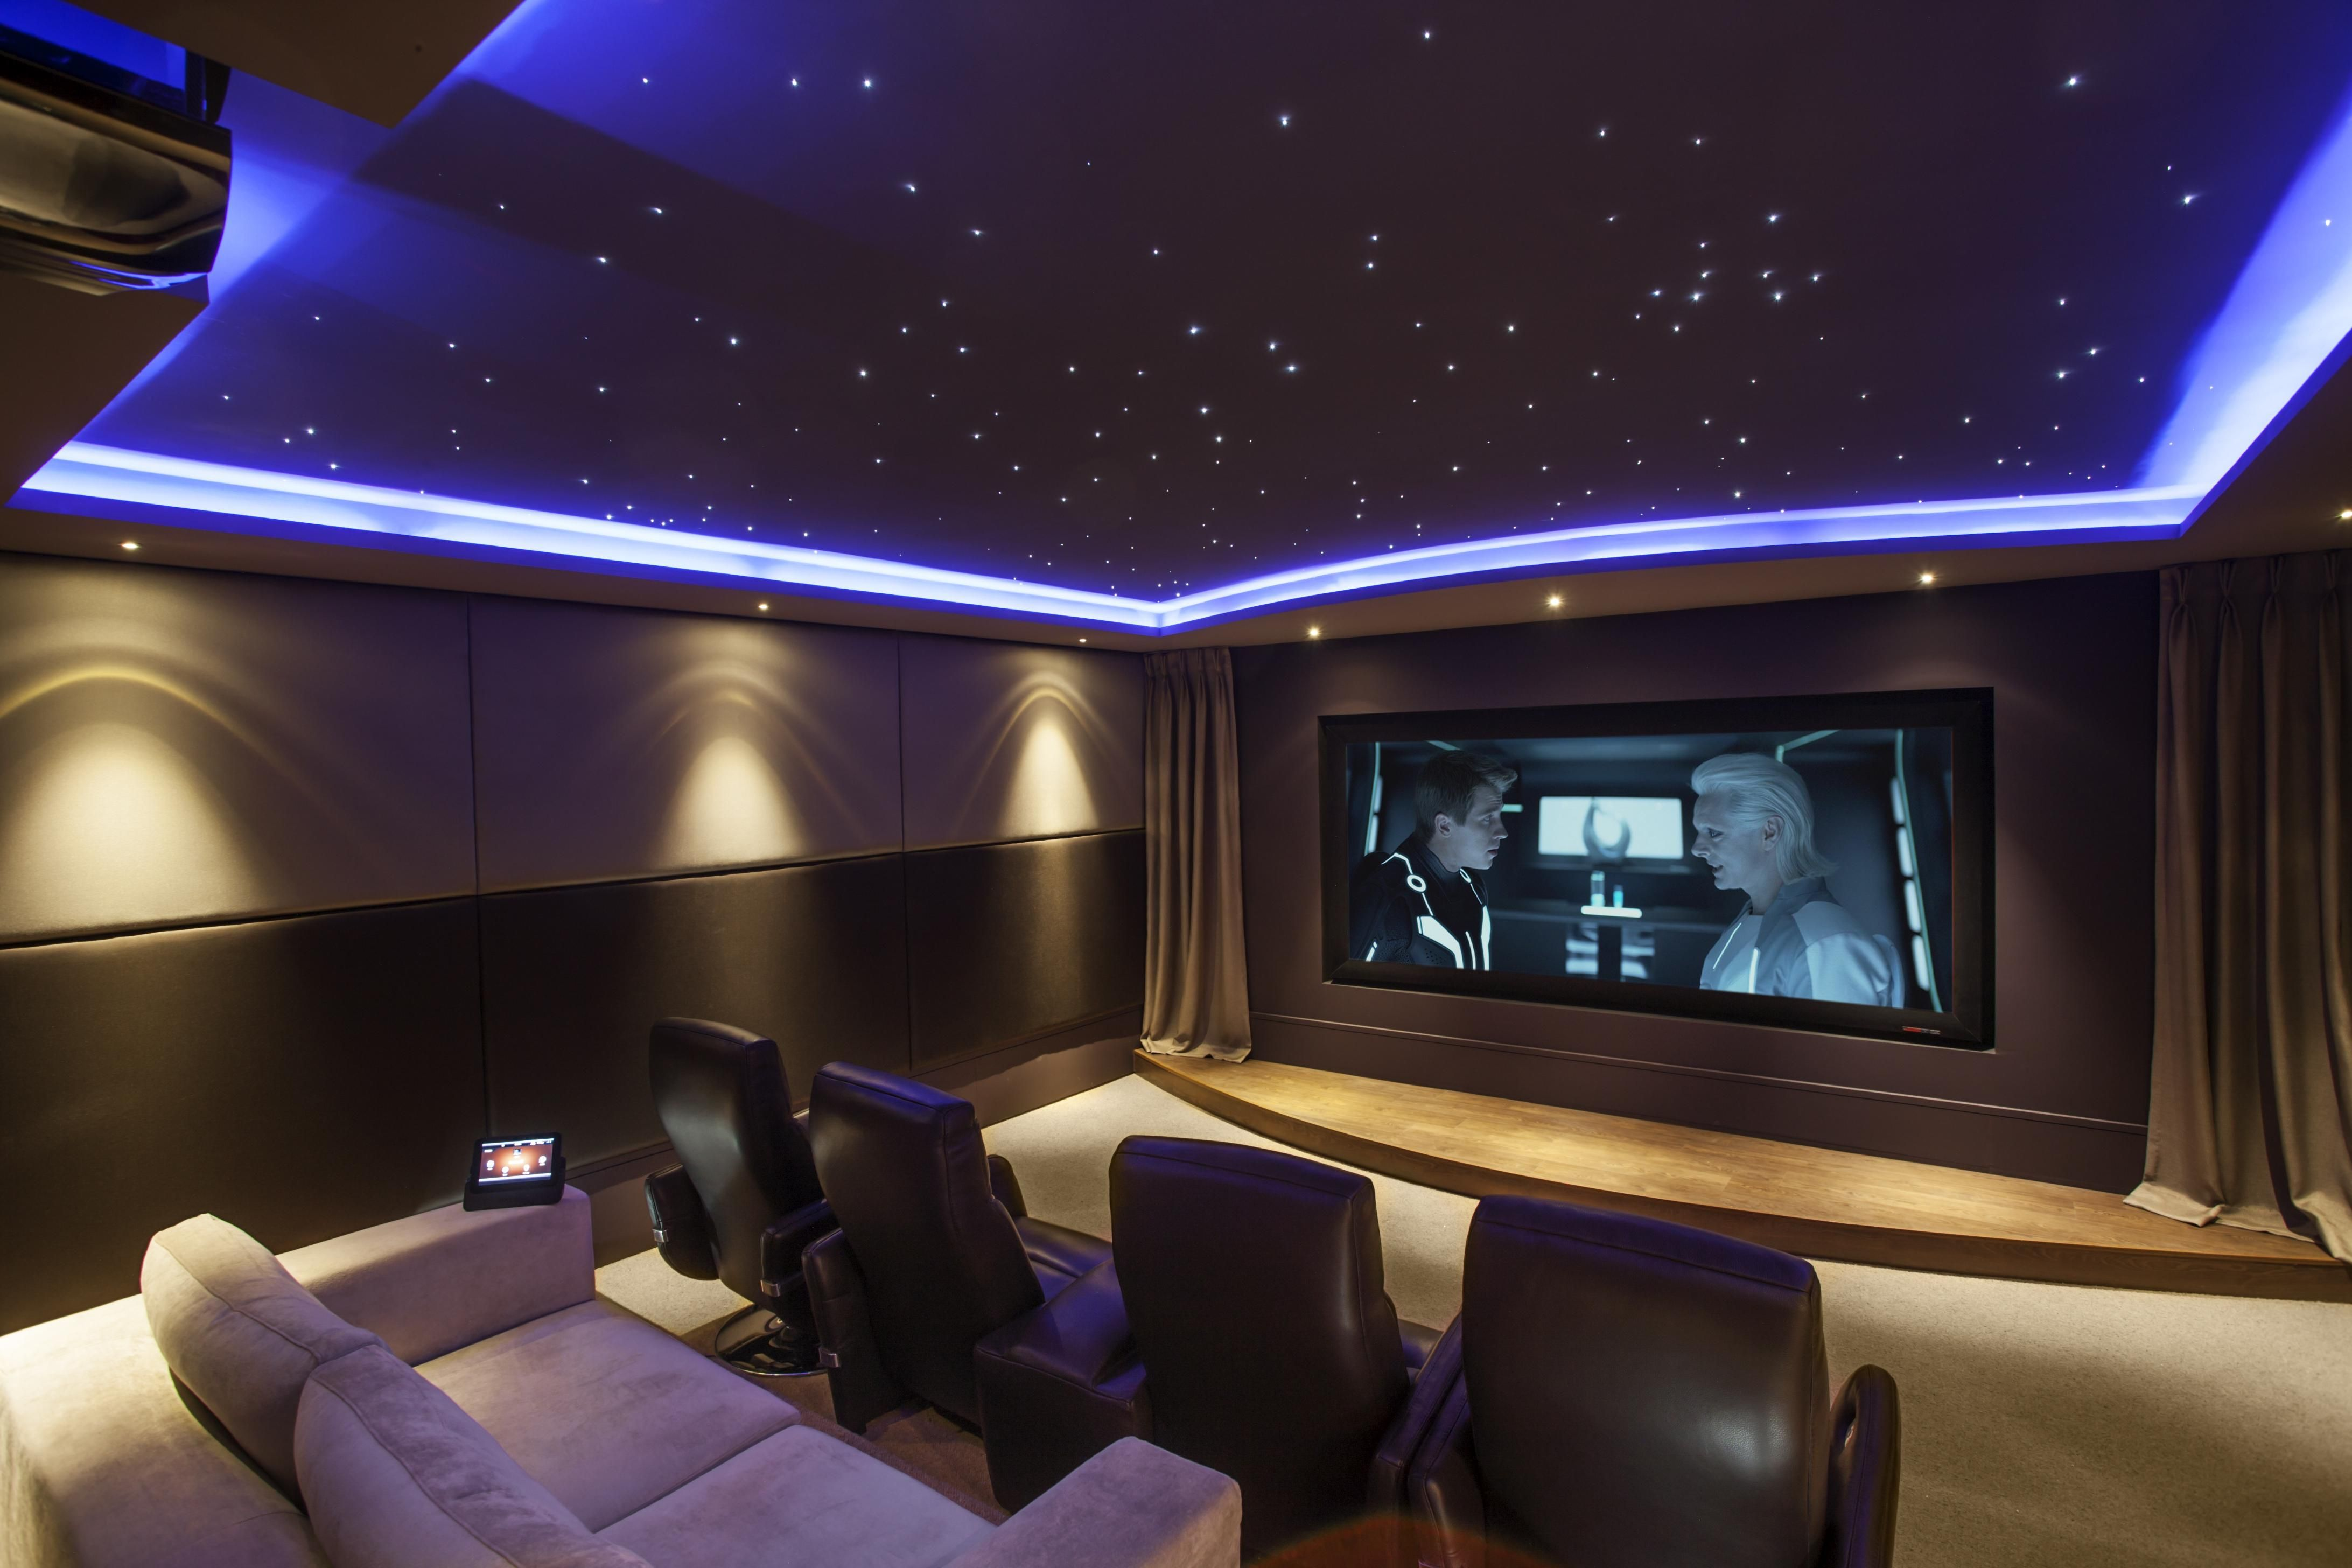 Home Cinema Design Impressive 7 Simply Amazing Home Cinema Setups  Cinema Cinema Room And Room Decorating Design